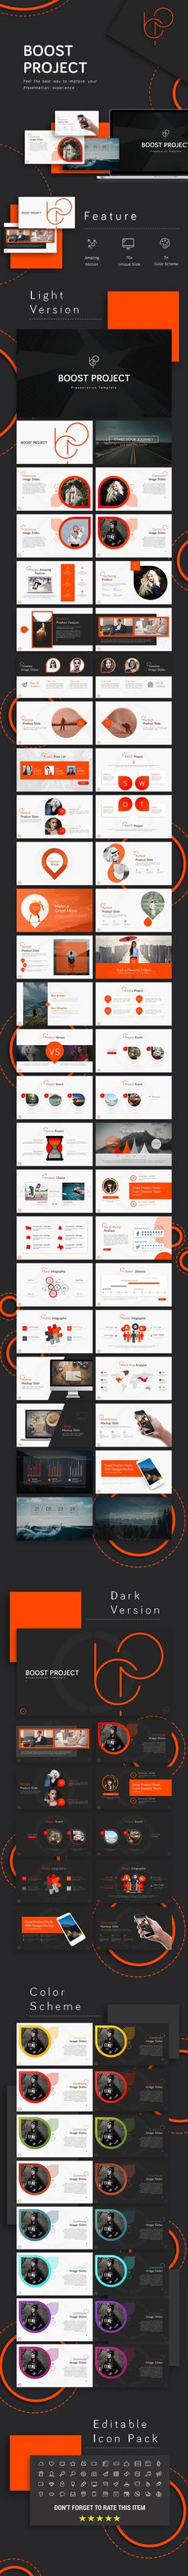 Boost Project Powerpoint Template